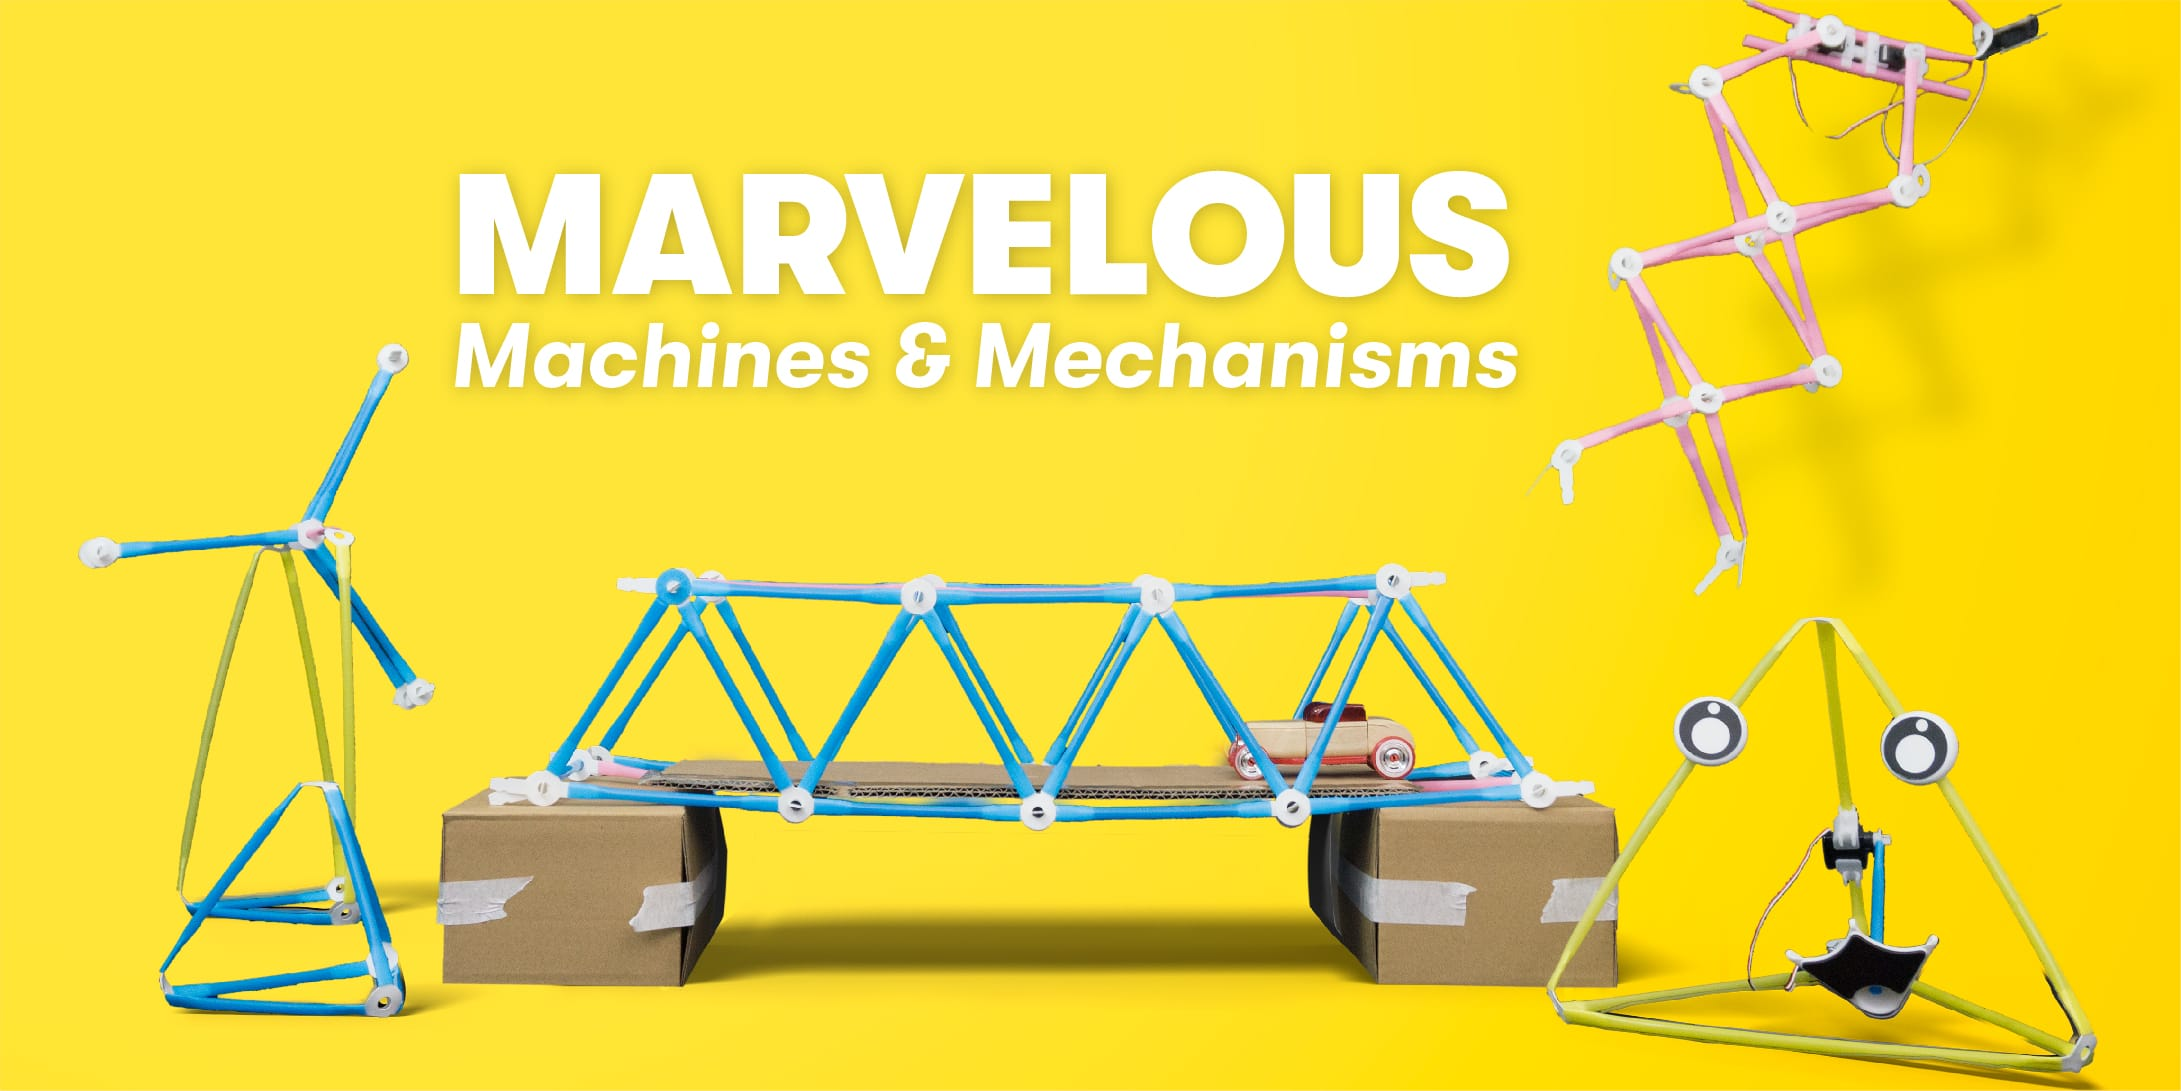 marvelous-machines-mechanisms2:1 Ages 7-13no-logo